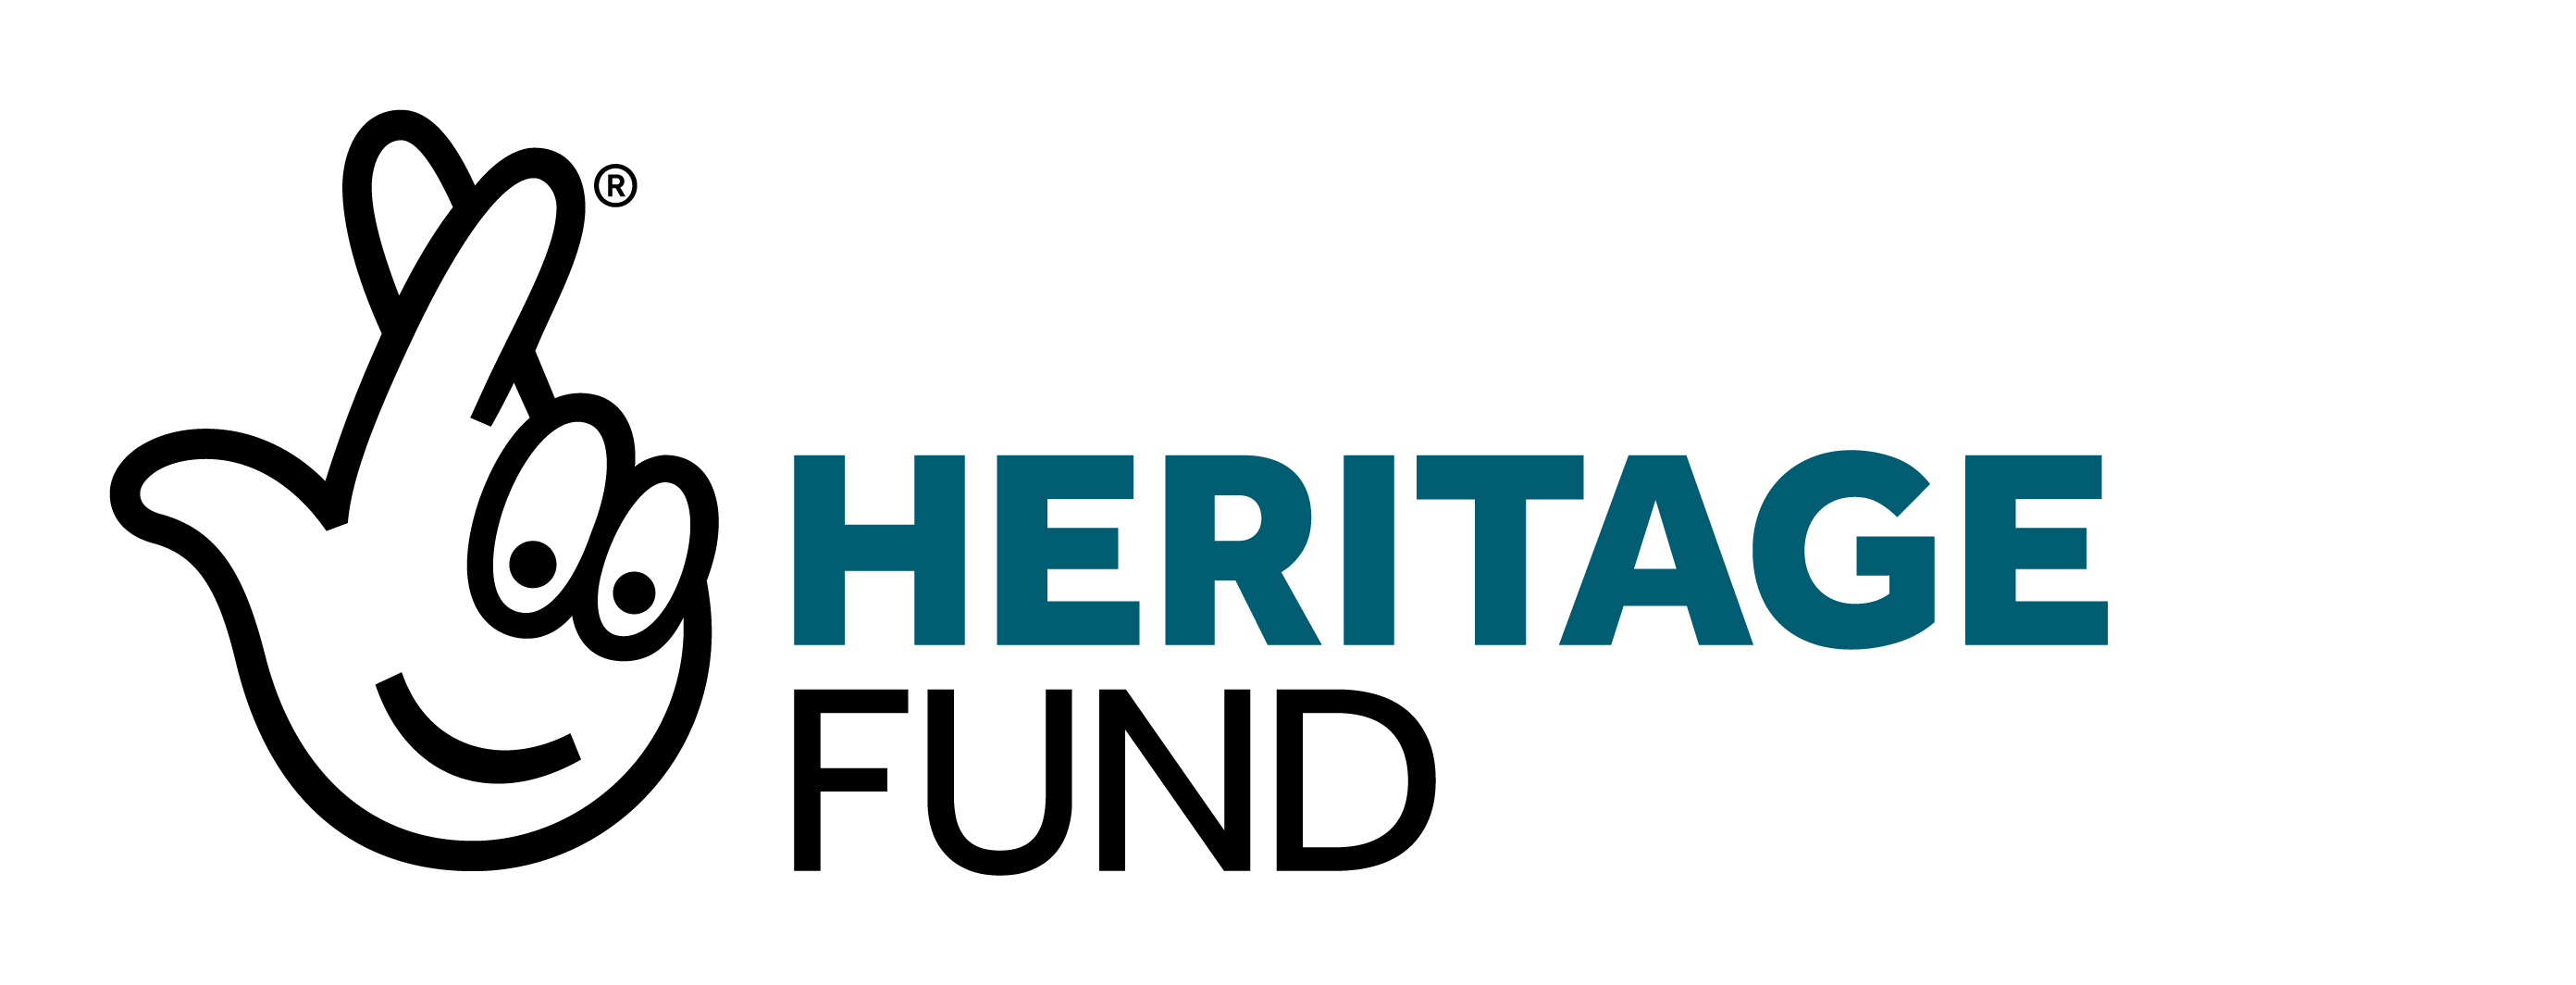 https://www.heritagefund.org.uk/sites/default/files/media/attachments/TNLHLF_Colour_Logo_English_RGB_0_0.jpg